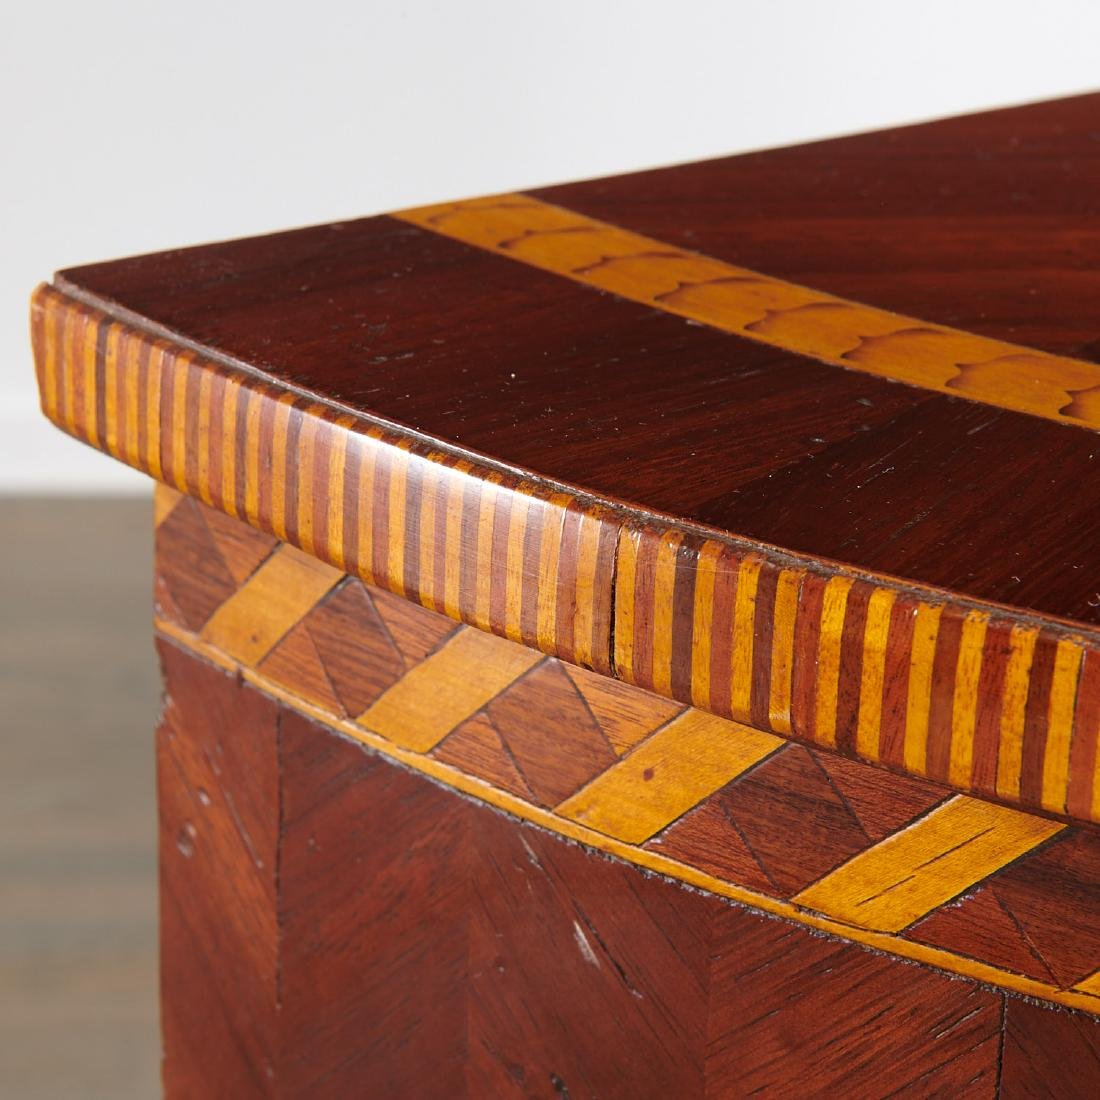 Alfonso Marina parquetry demilune table - 4